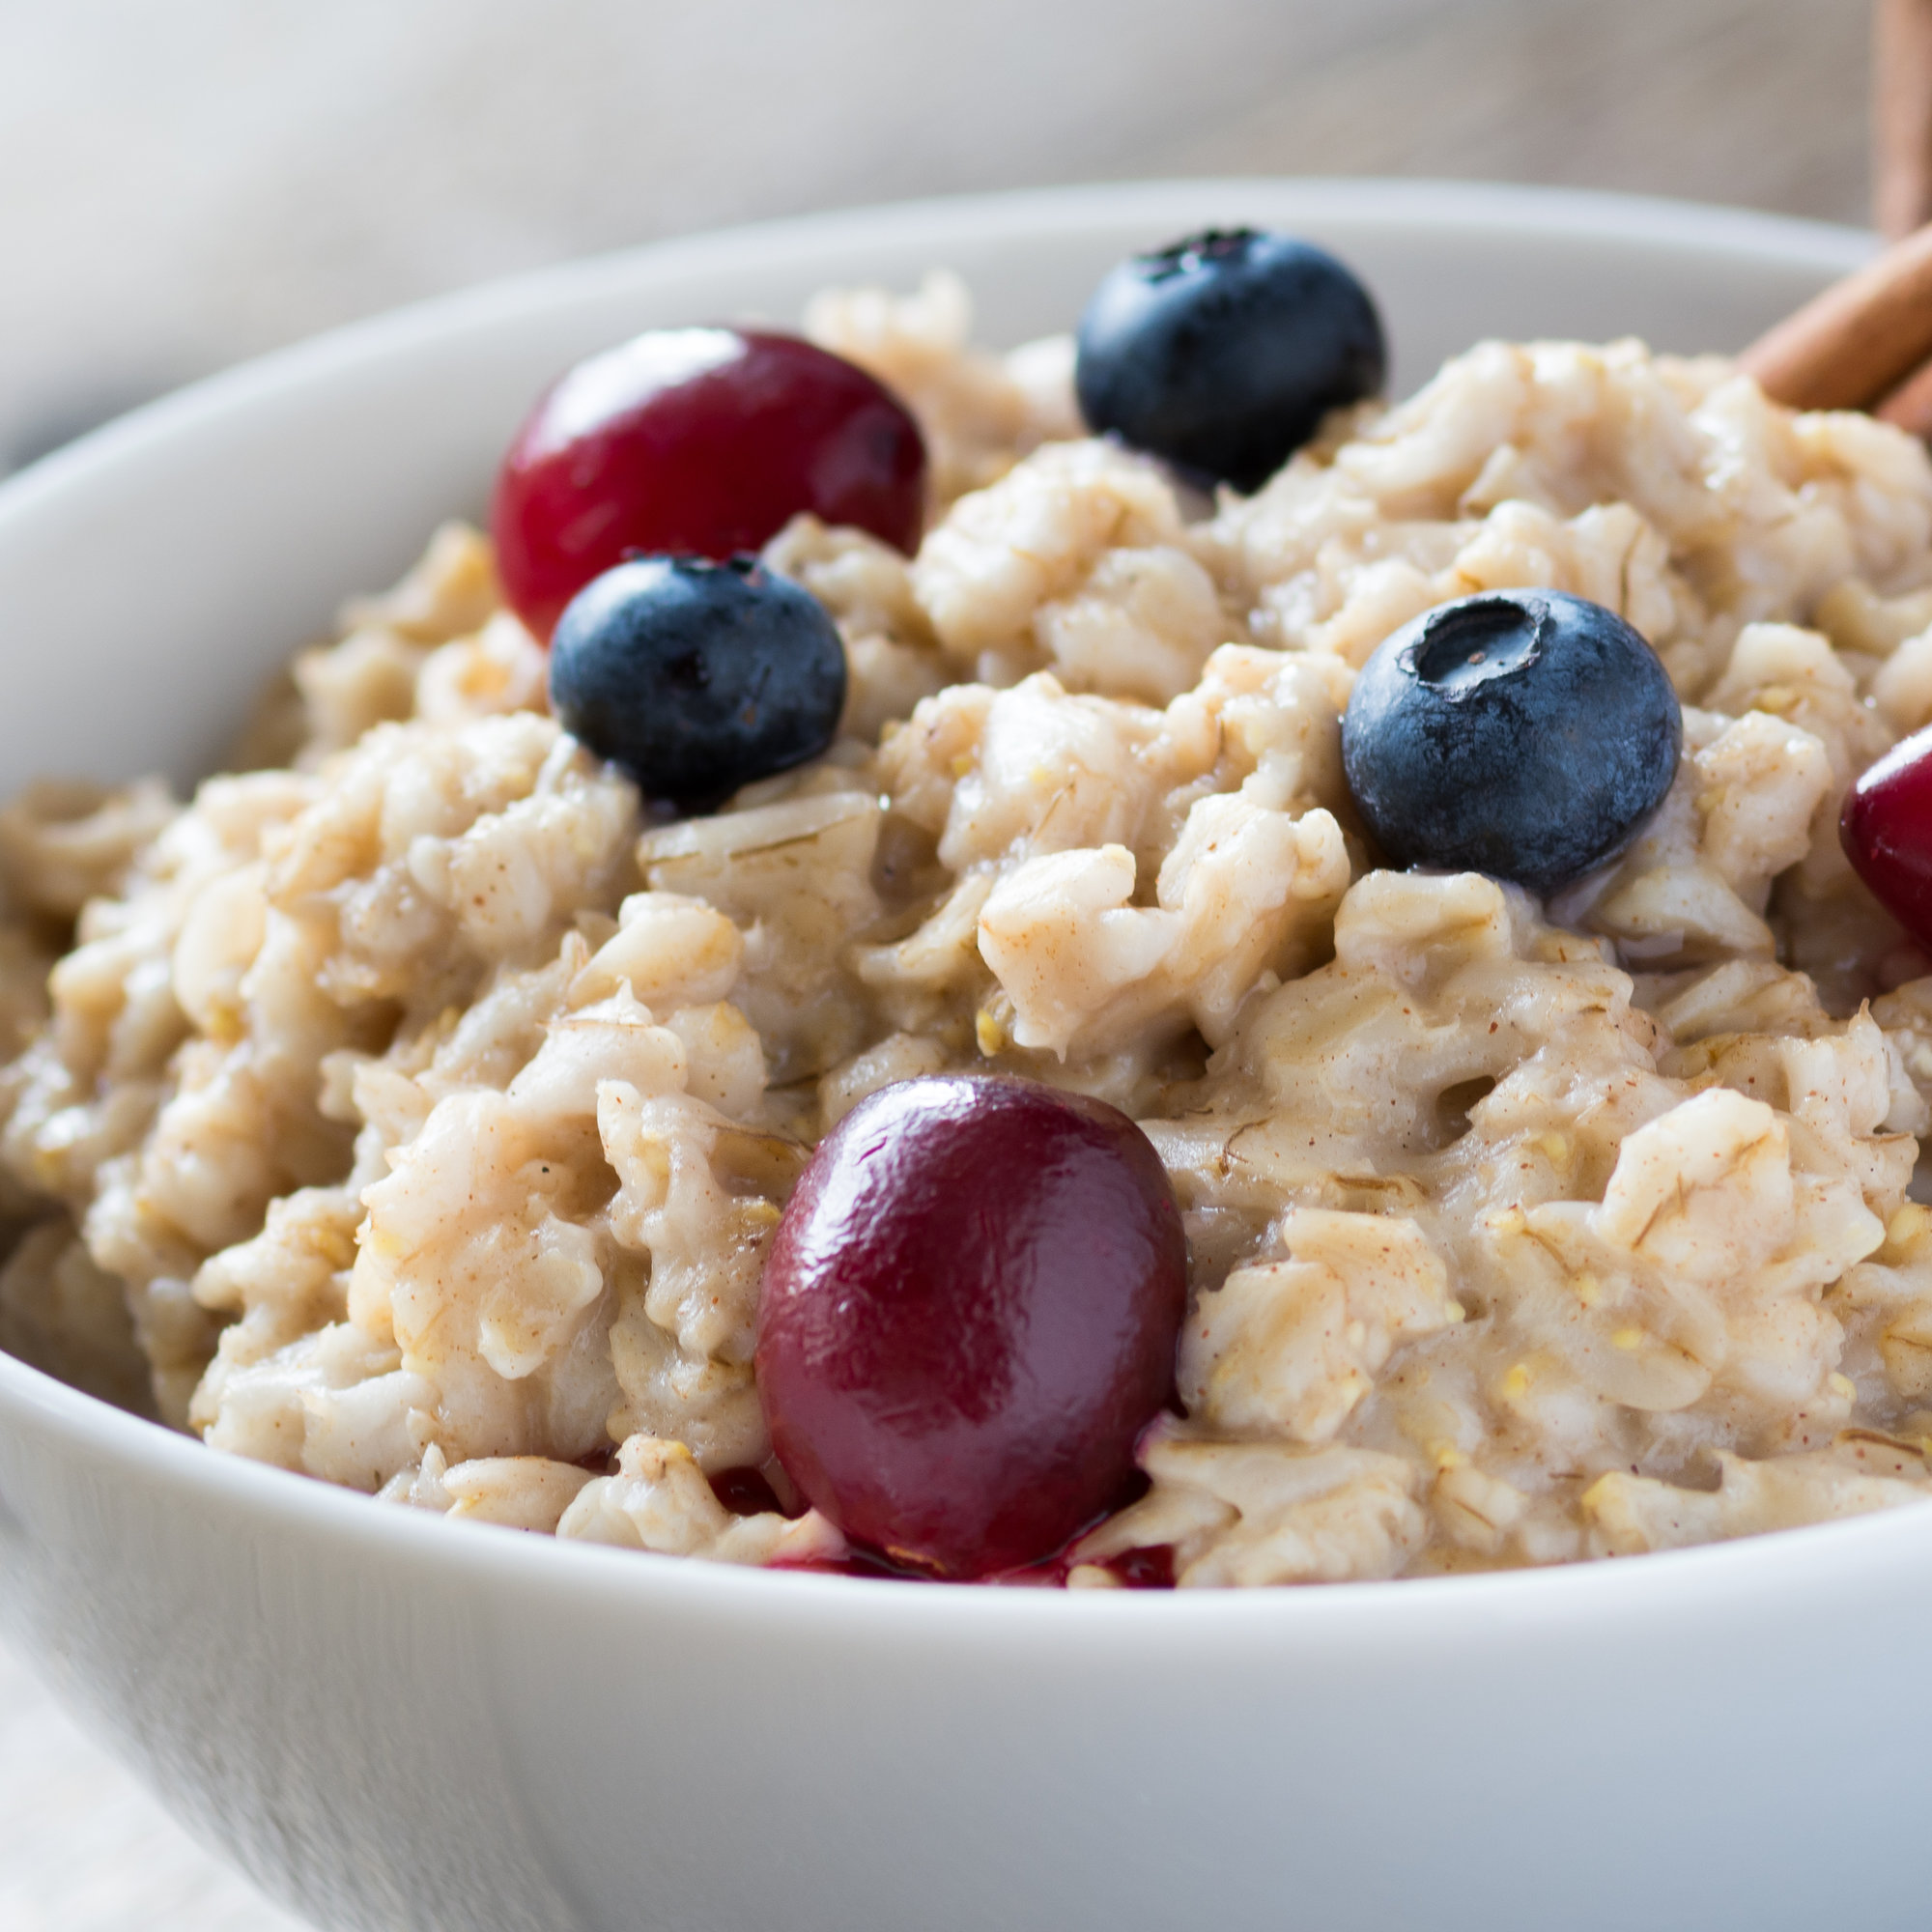 Are There Really Pesticides in Your Oatmeal?